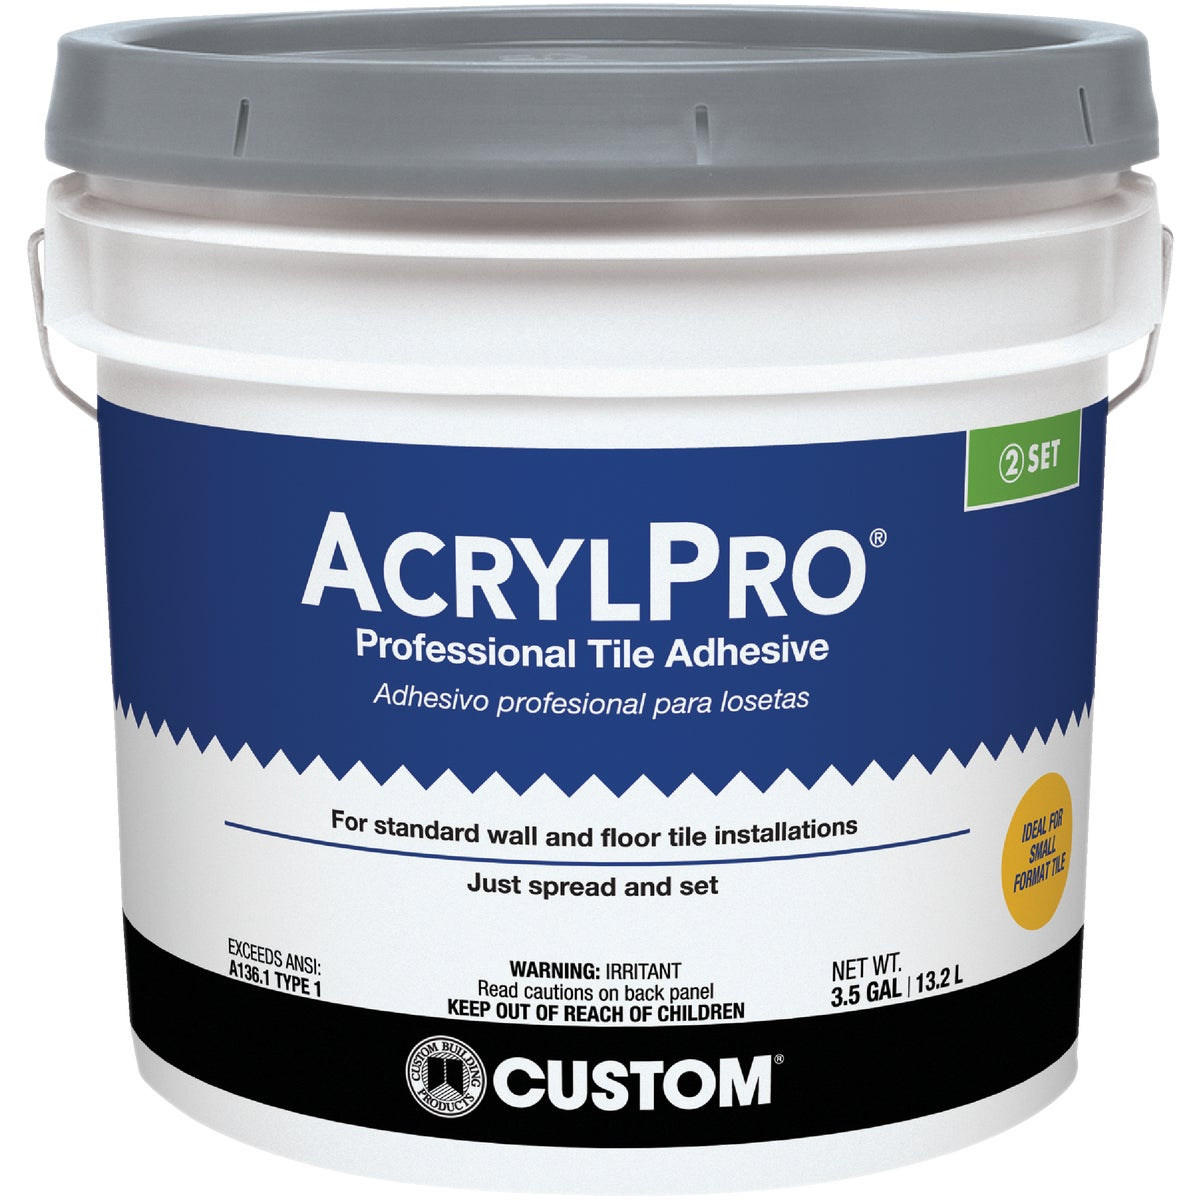 3.5GAL CRMIC TILE MASTIC - ARL40003 by Custom Building Prod